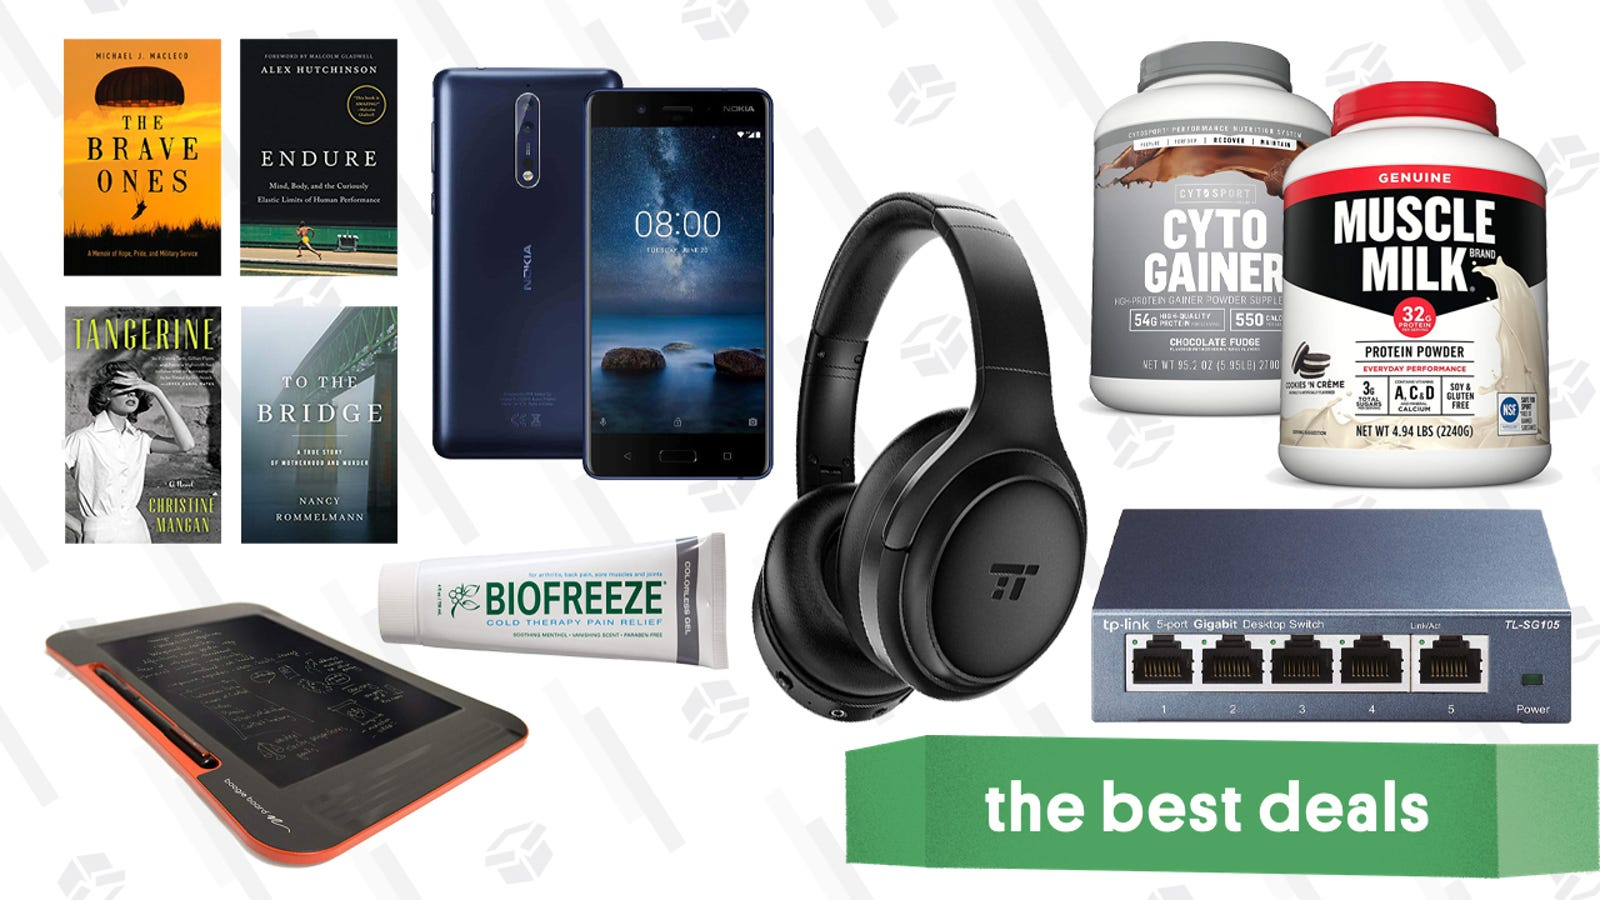 Sunday's Best Deals: Noise-Cancelling Headphones, Muscle Milk, Kindle eBooks, and More